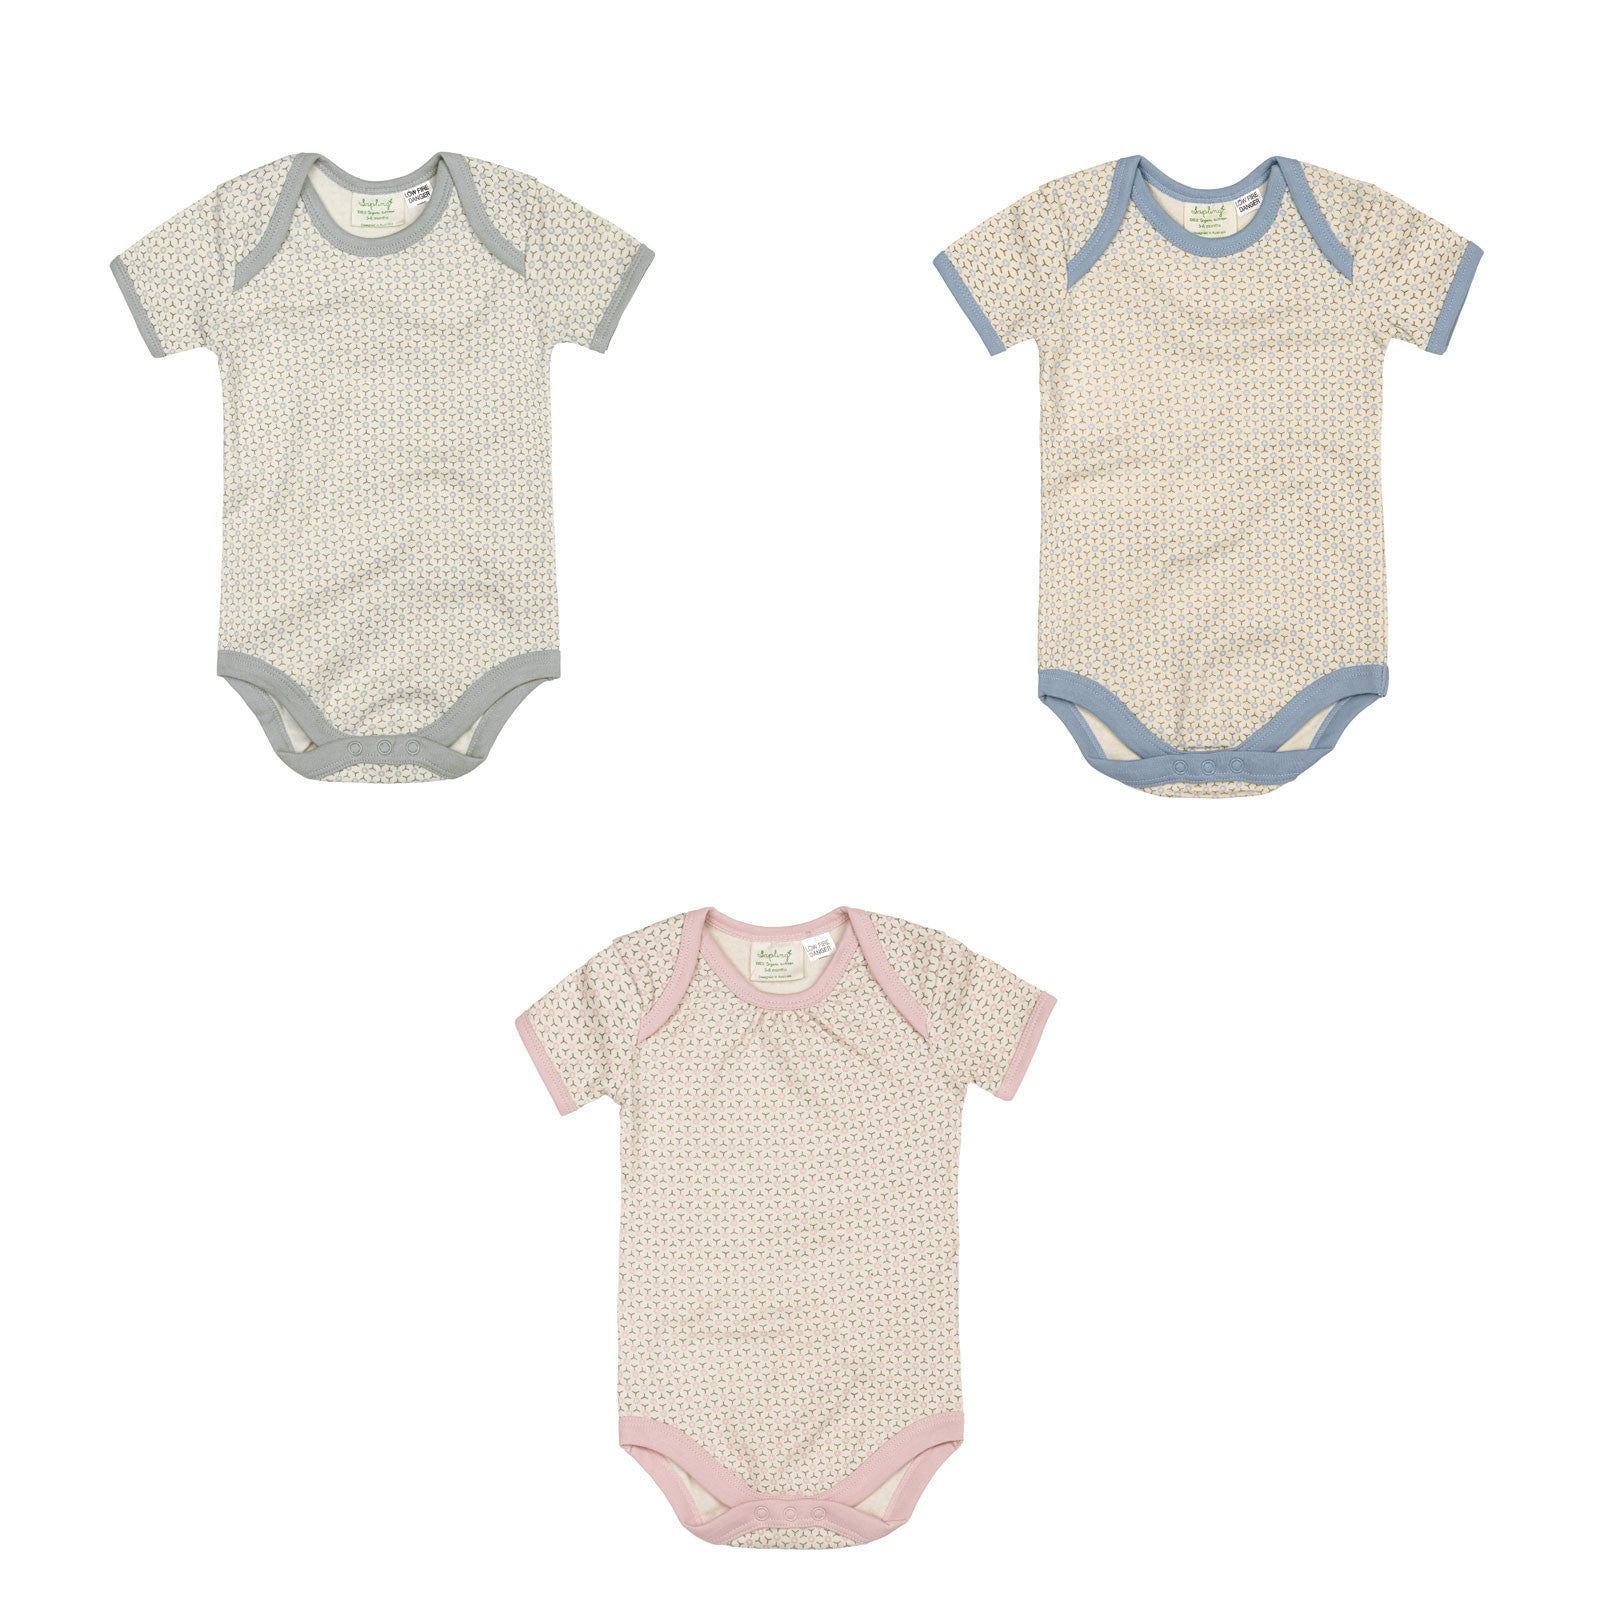 Sapling Child Essentials Short Sleeve Bodysuit Sapling Child Baby & Toddler Clothing at Little Earth Nest Eco Shop